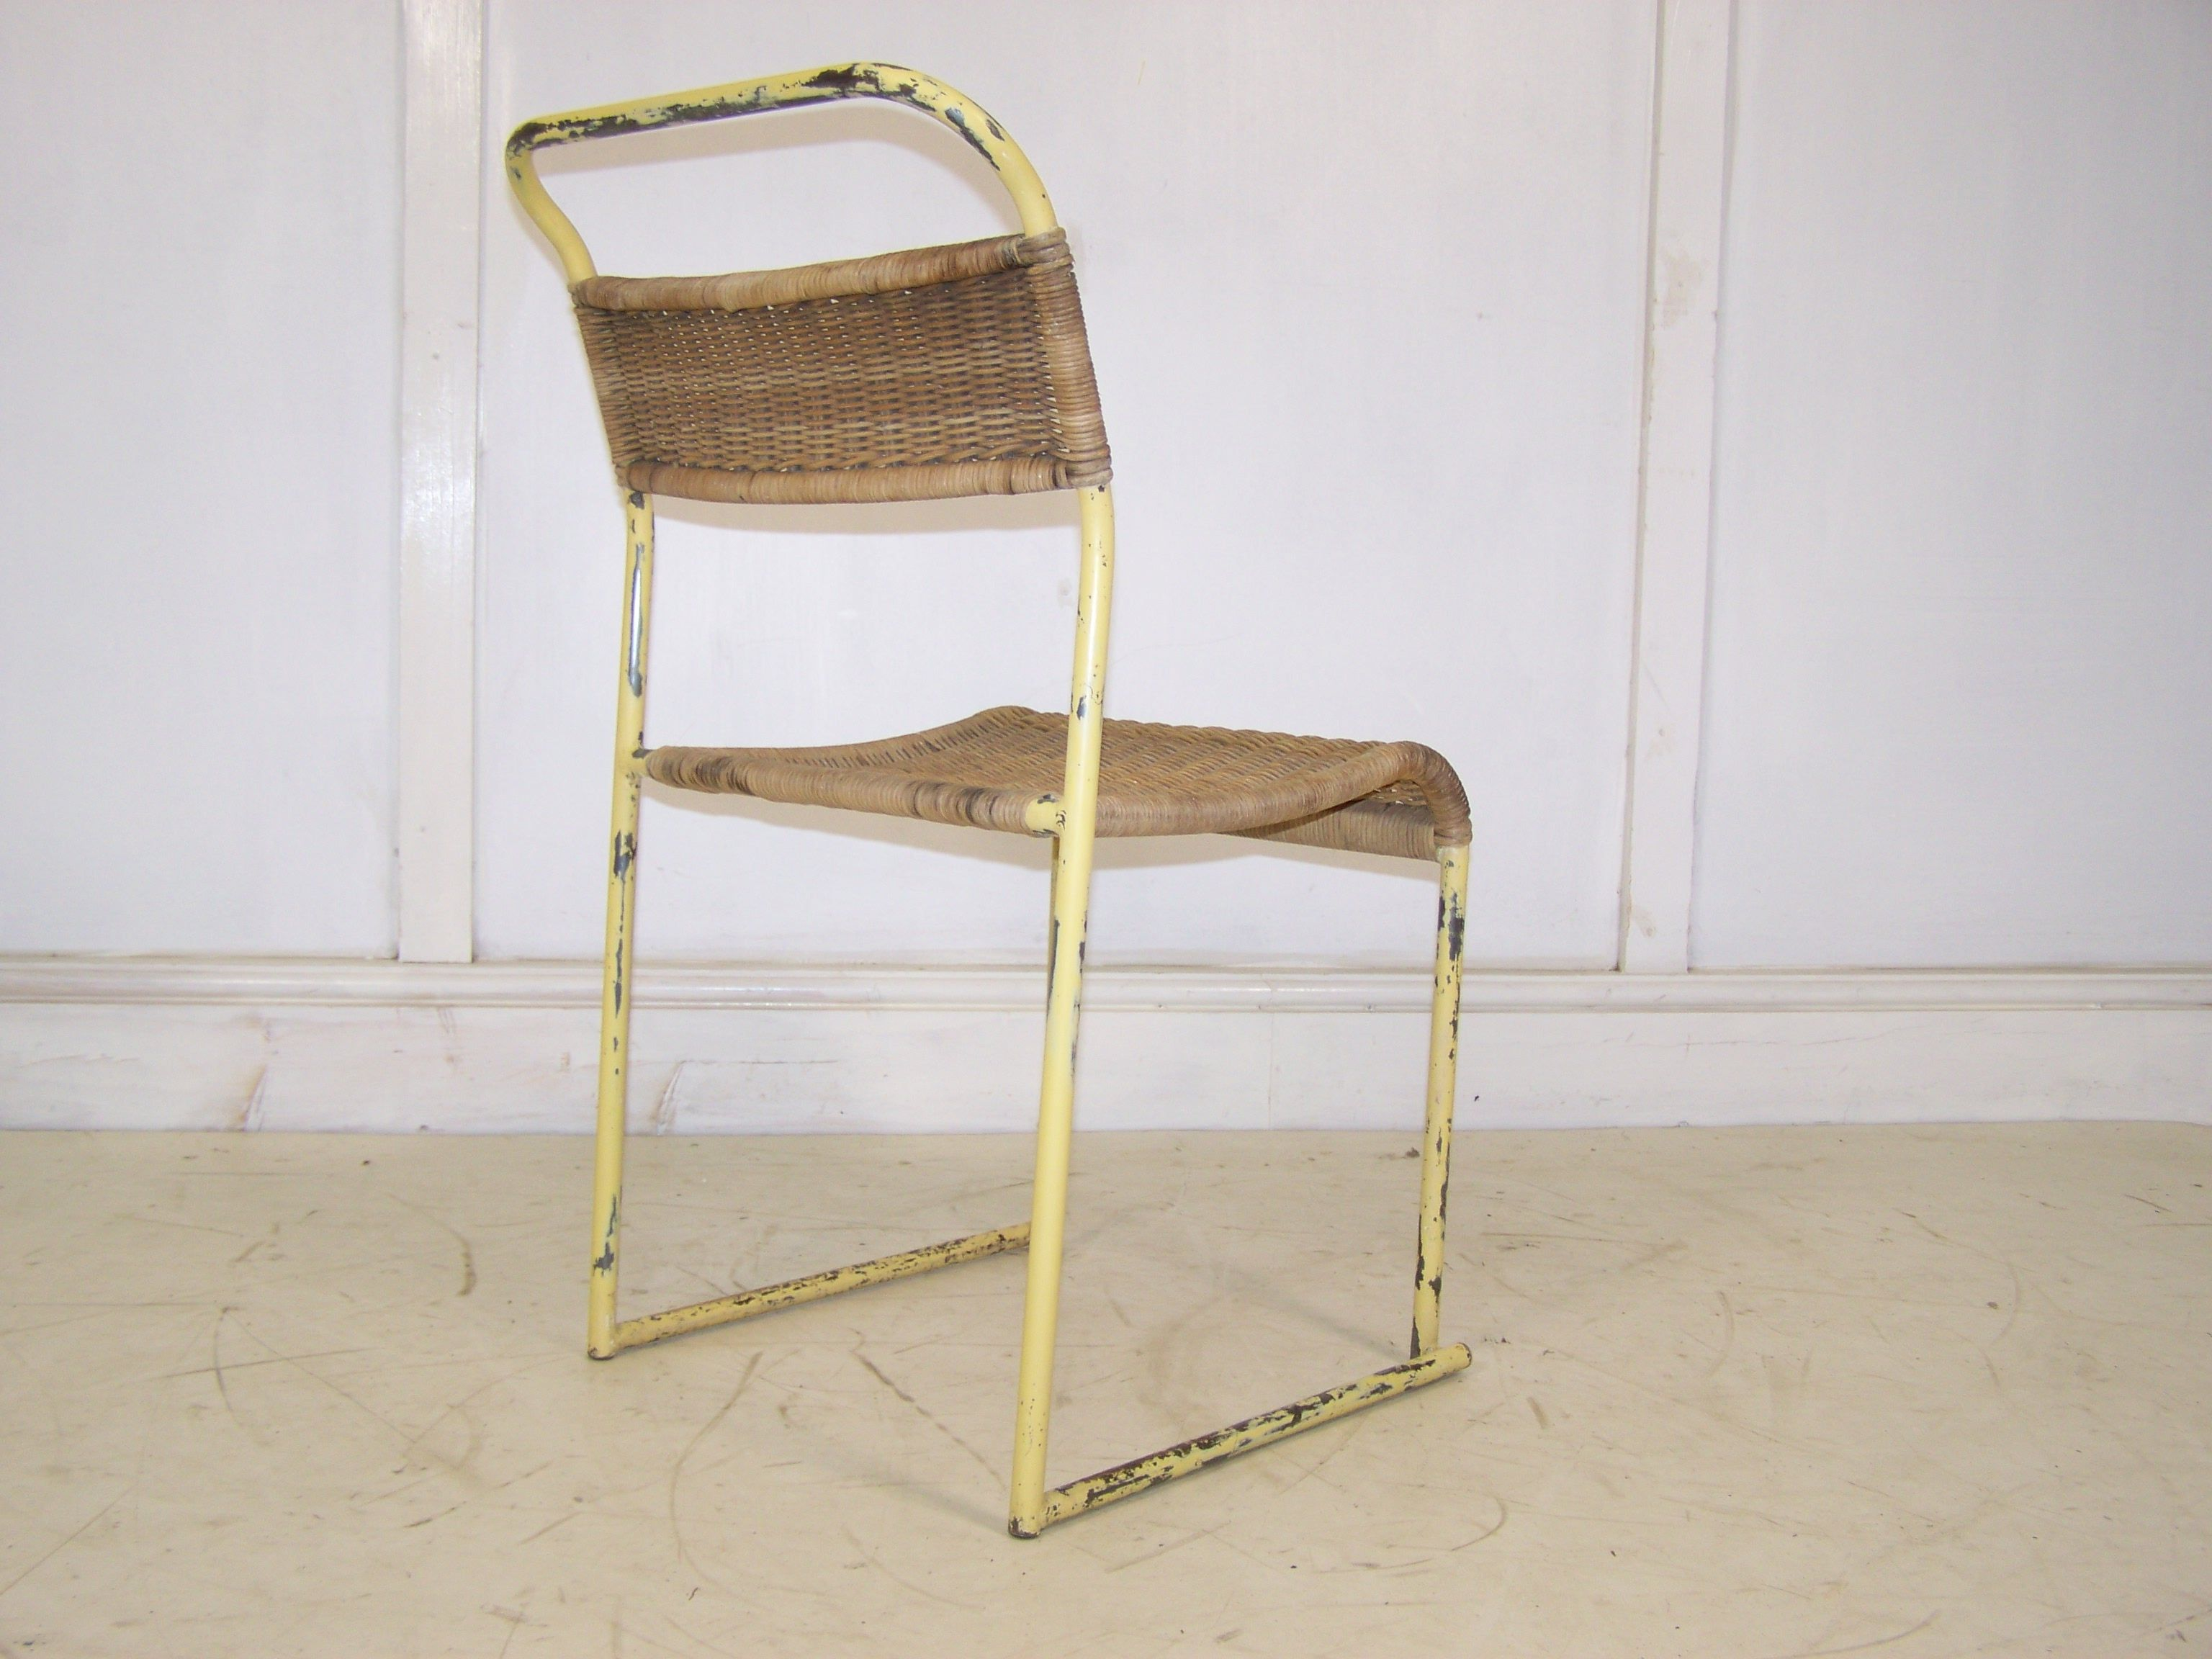 bauhaus stacking chair rarest Bruno pollack chair with the weaved